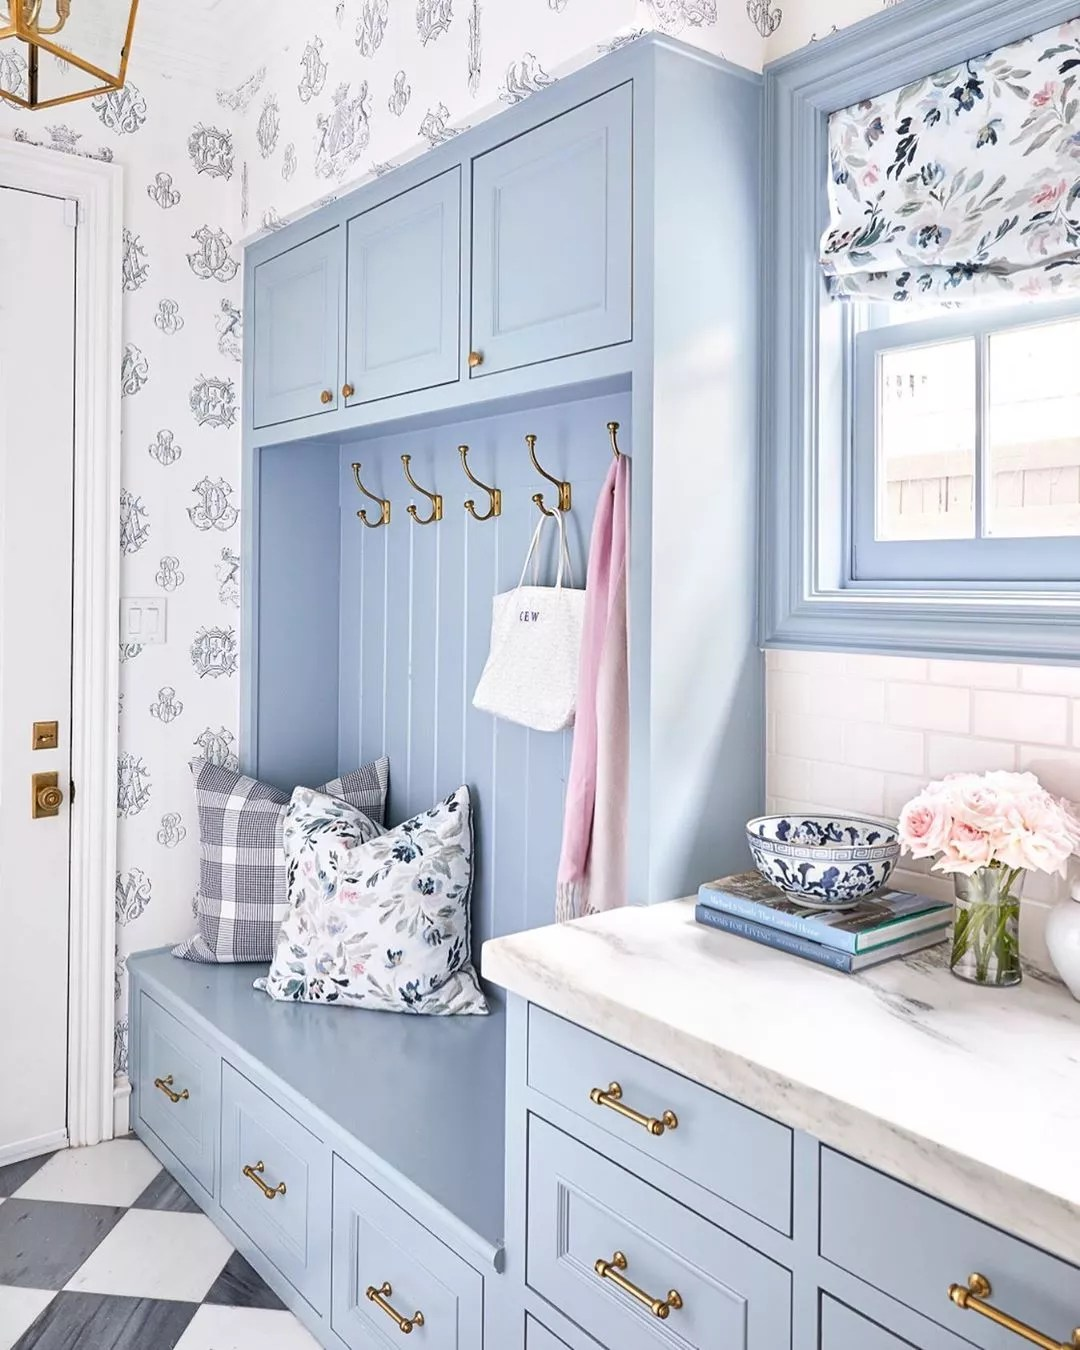 Blue and floral mudroom design. Photo by Instagram user @caitlinwilsondesign